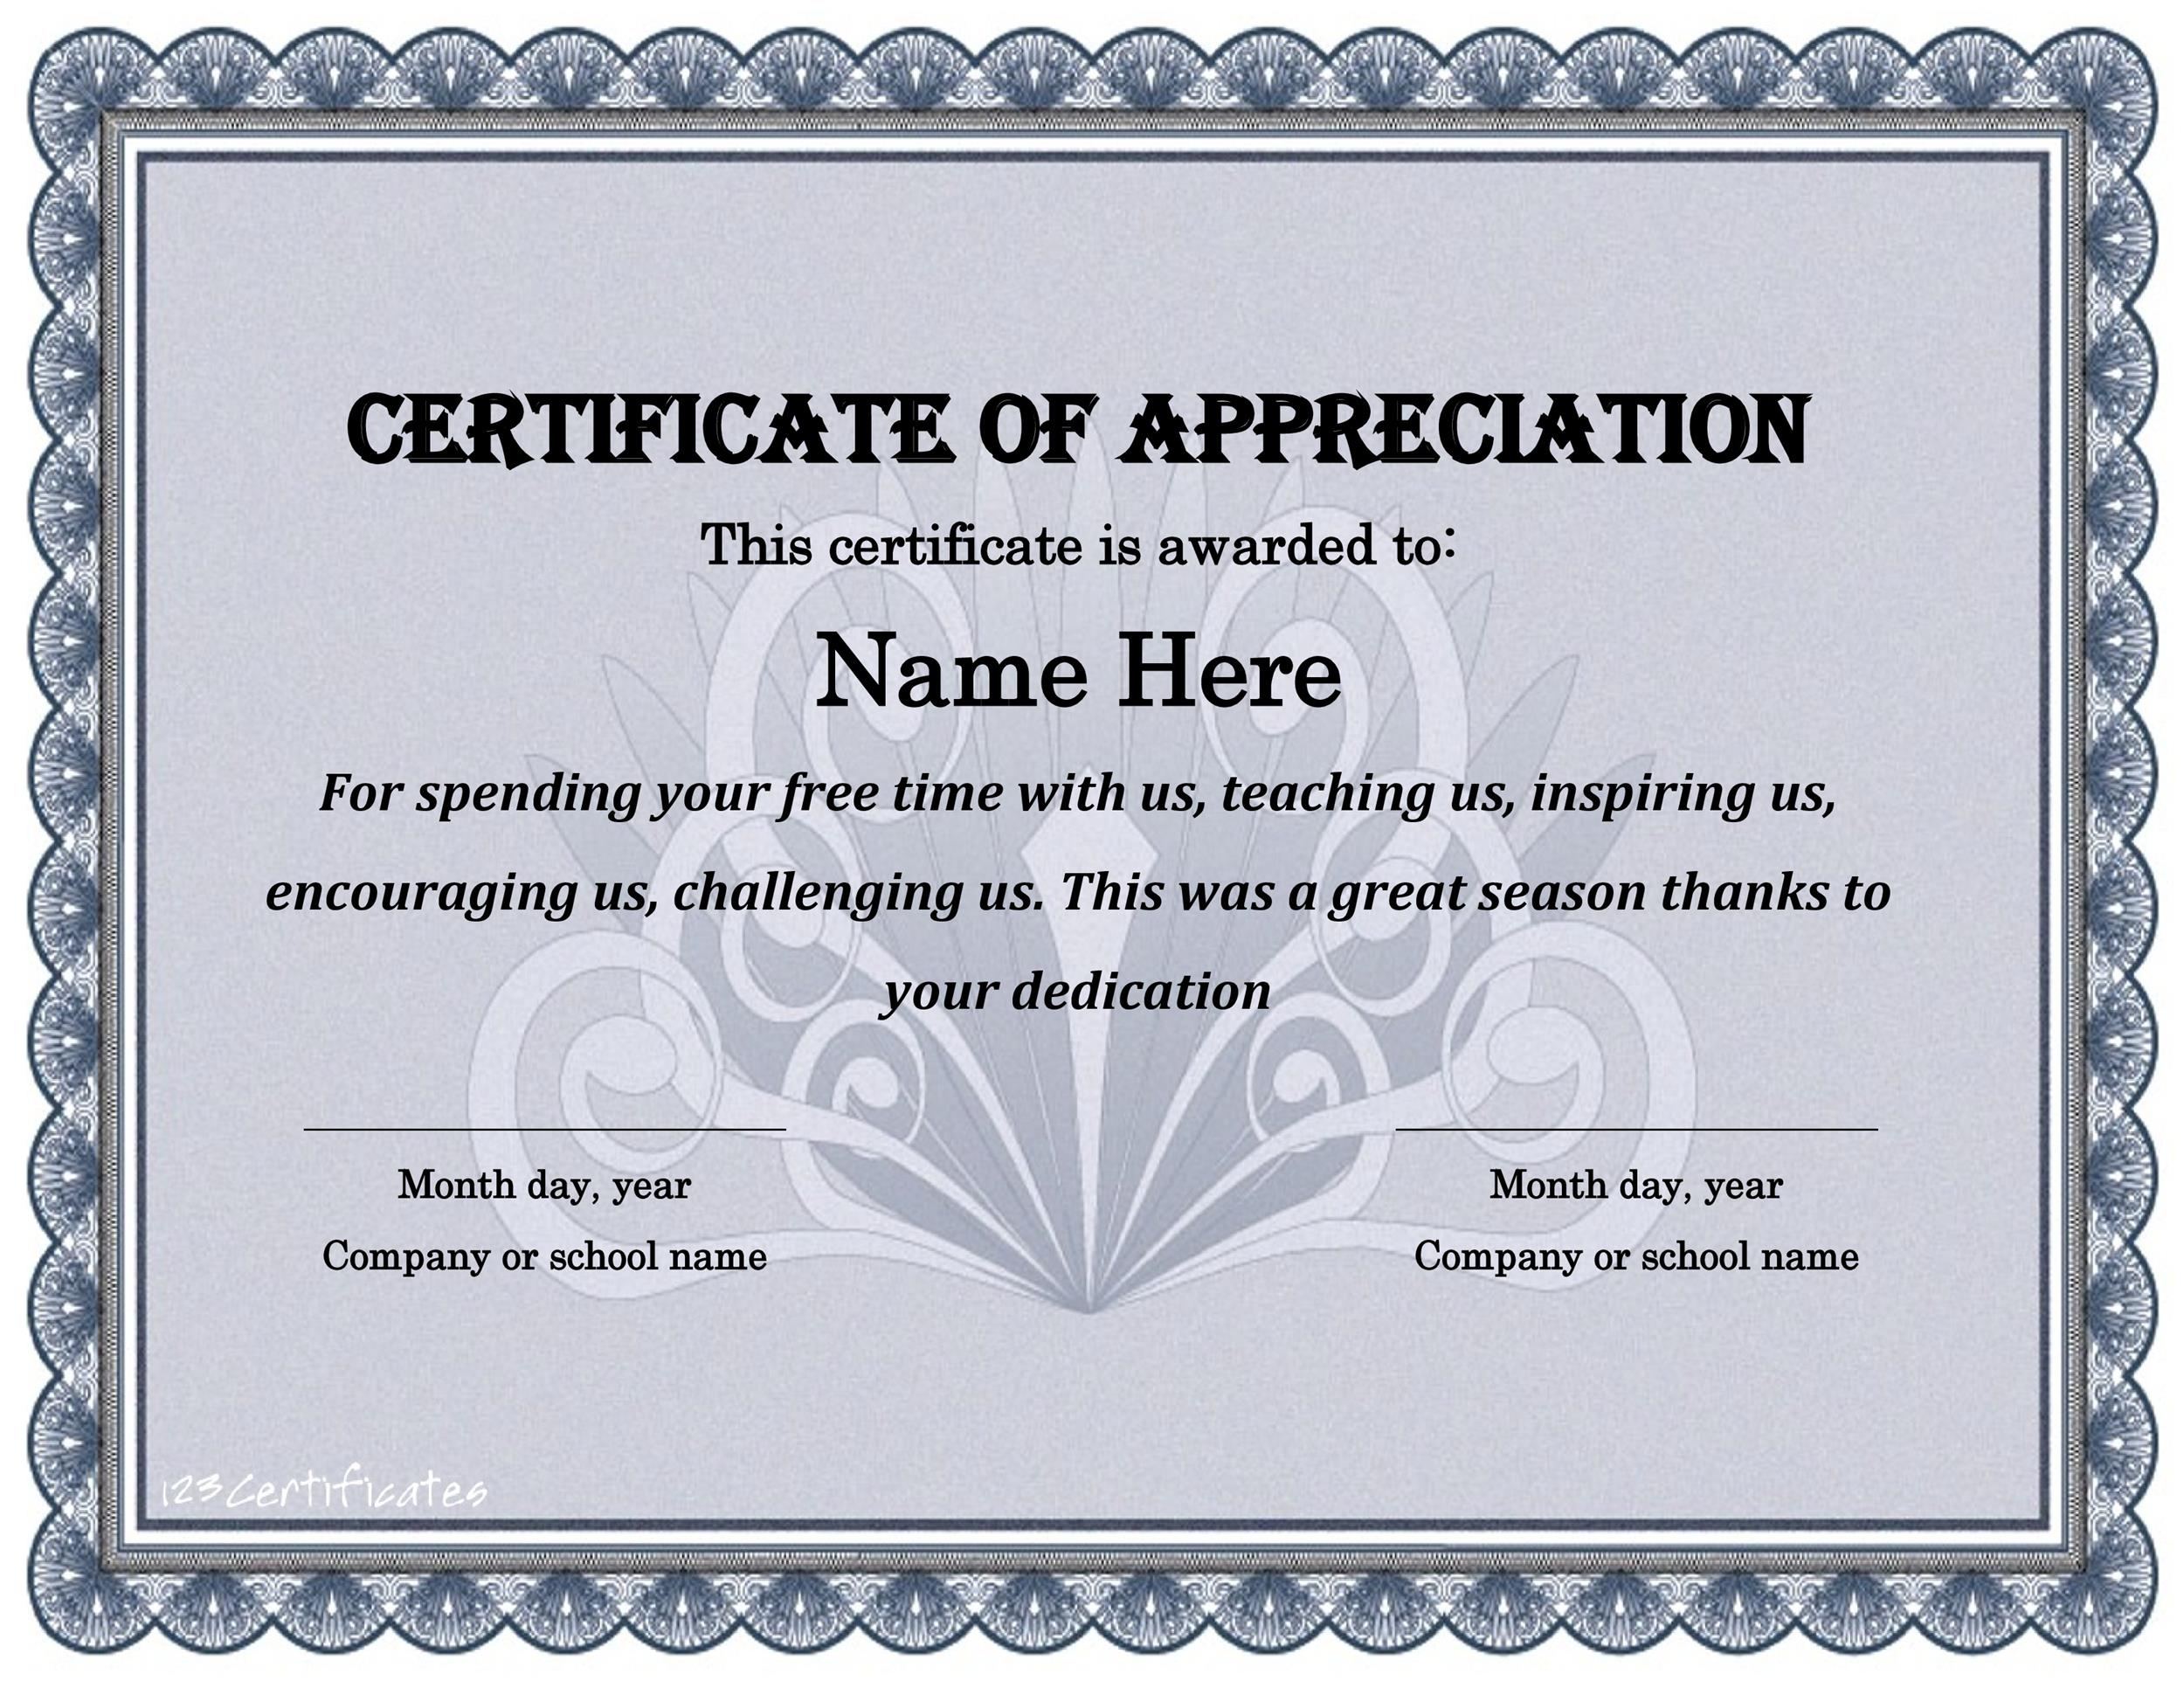 30 free certificate of appreciation templates and letters printable certificate of appreciation 21 yelopaper Image collections